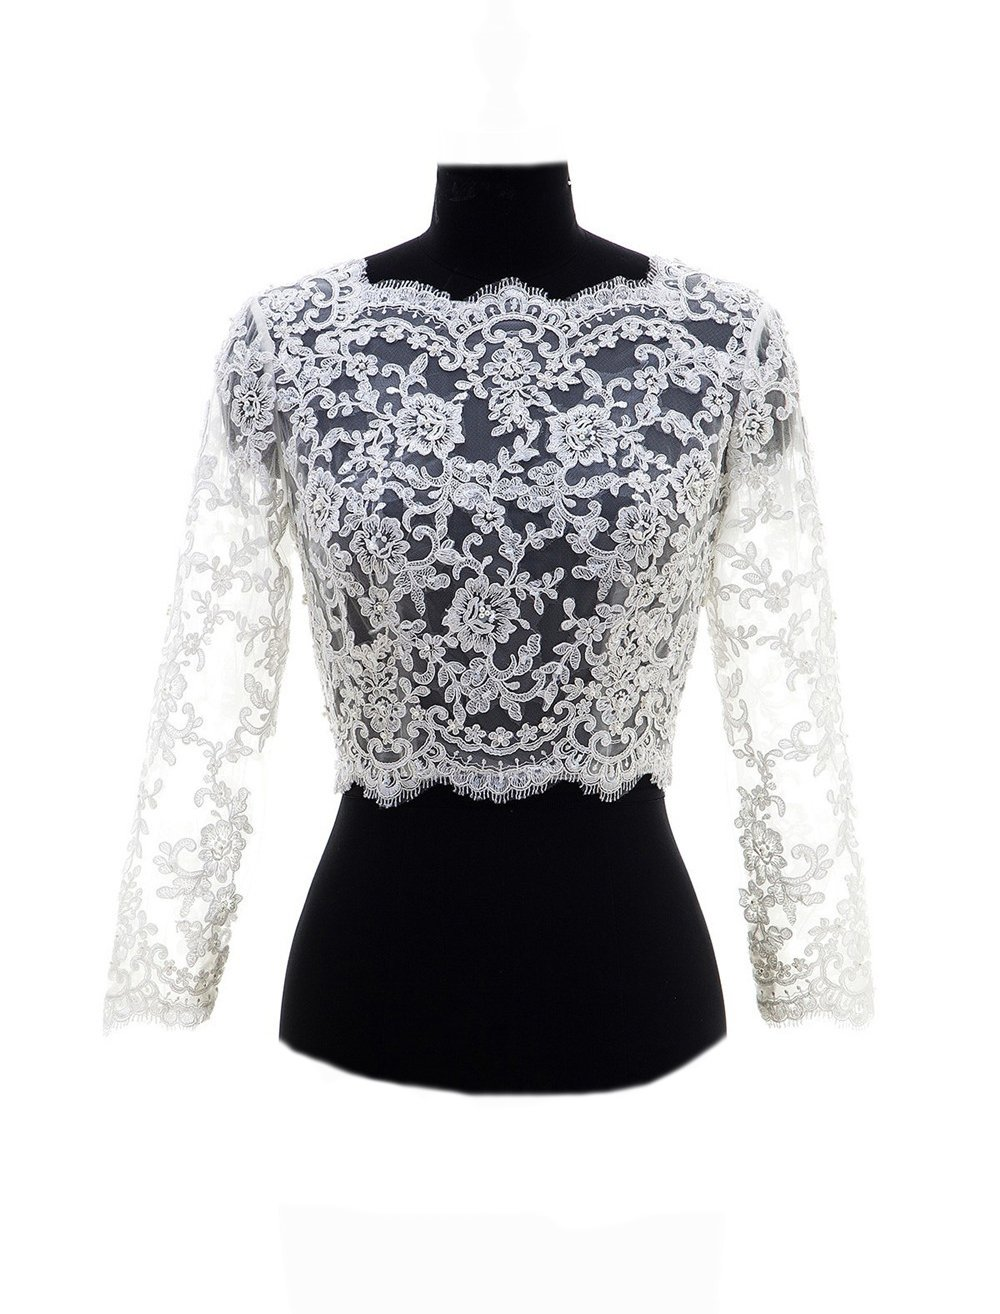 FIDDY898 V Back Beaded Lace Long Sleeve Wedding Jacekt Bridal Bolero Ivory 8